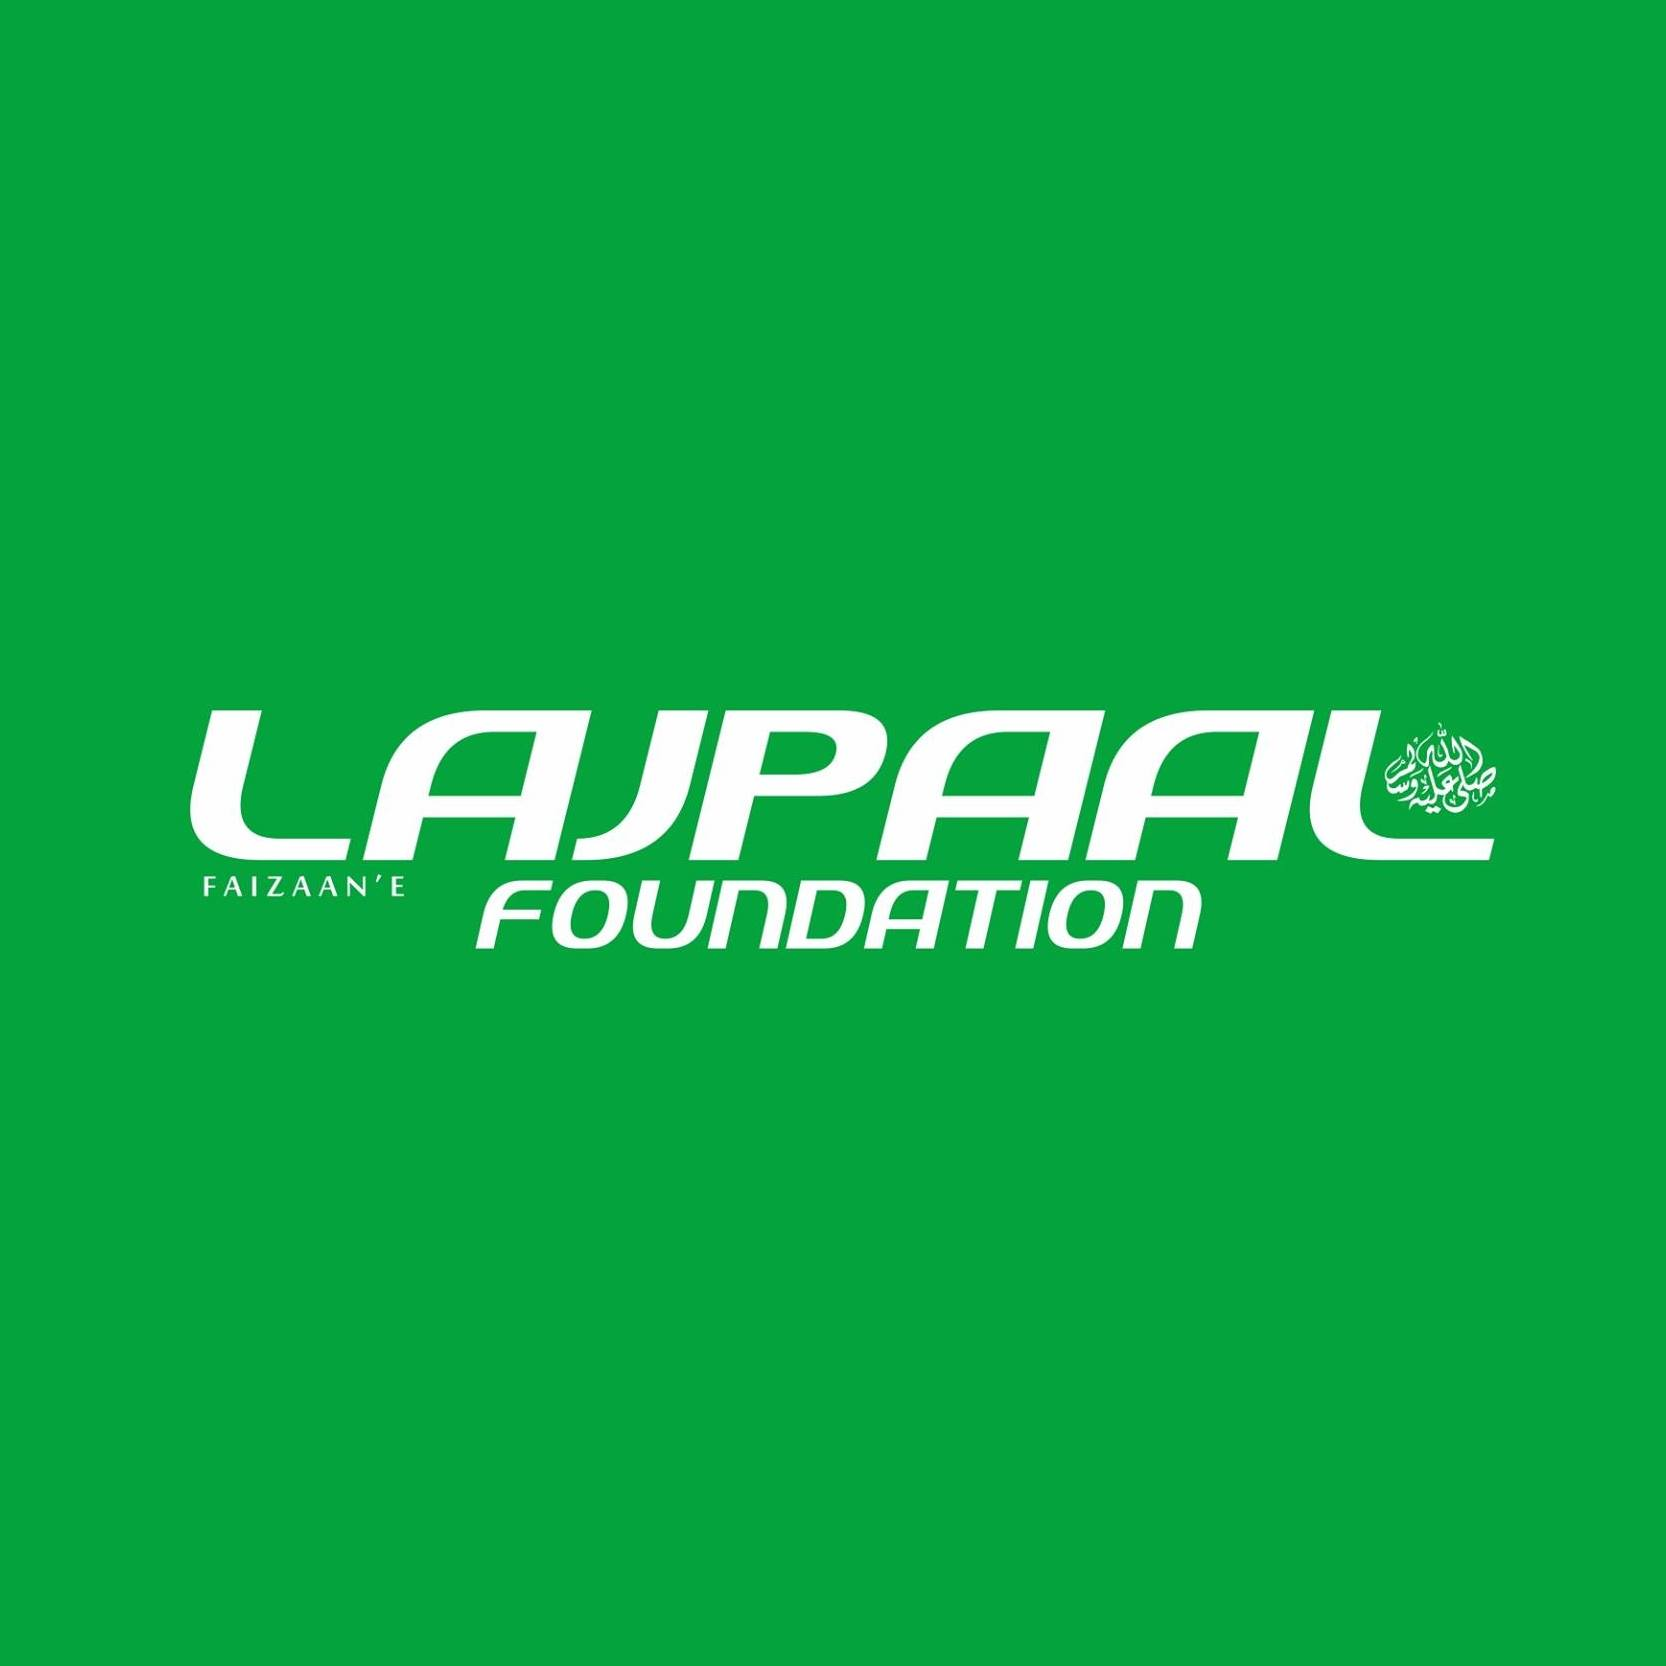 Donate to Lajpaal Foundation